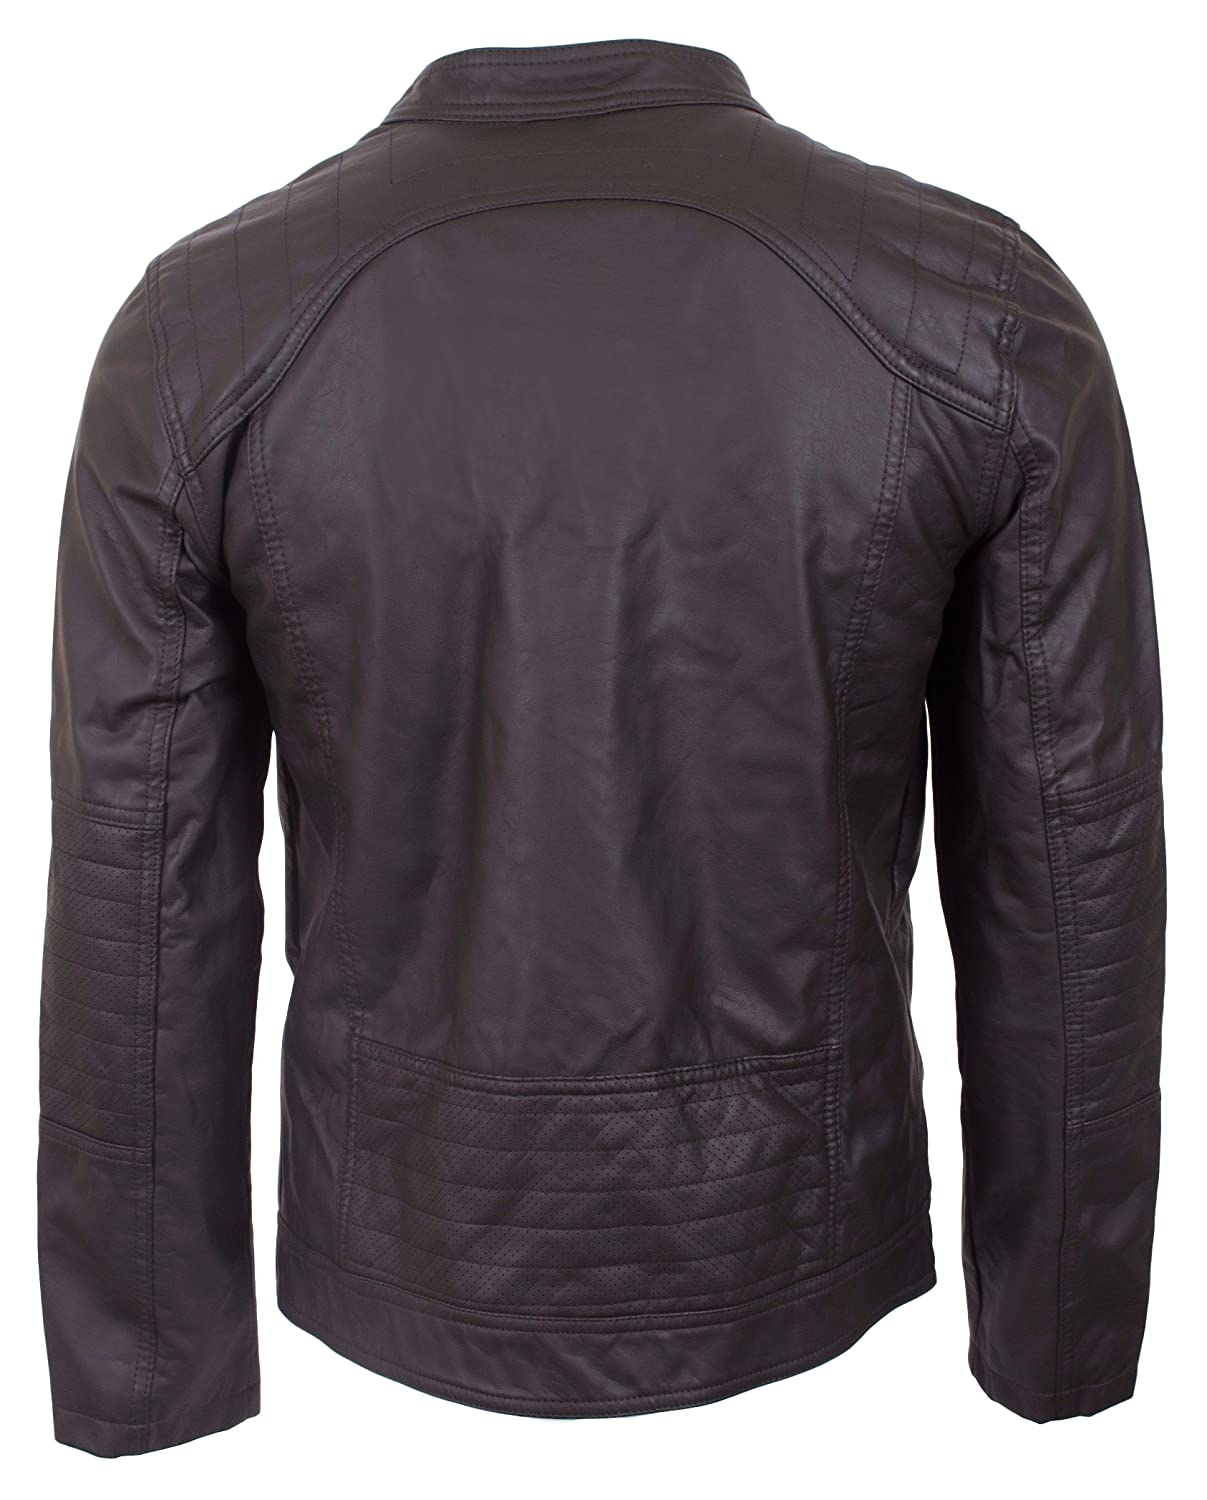 Amazon.com: urban republic Men s chamarra de moto de piel ...